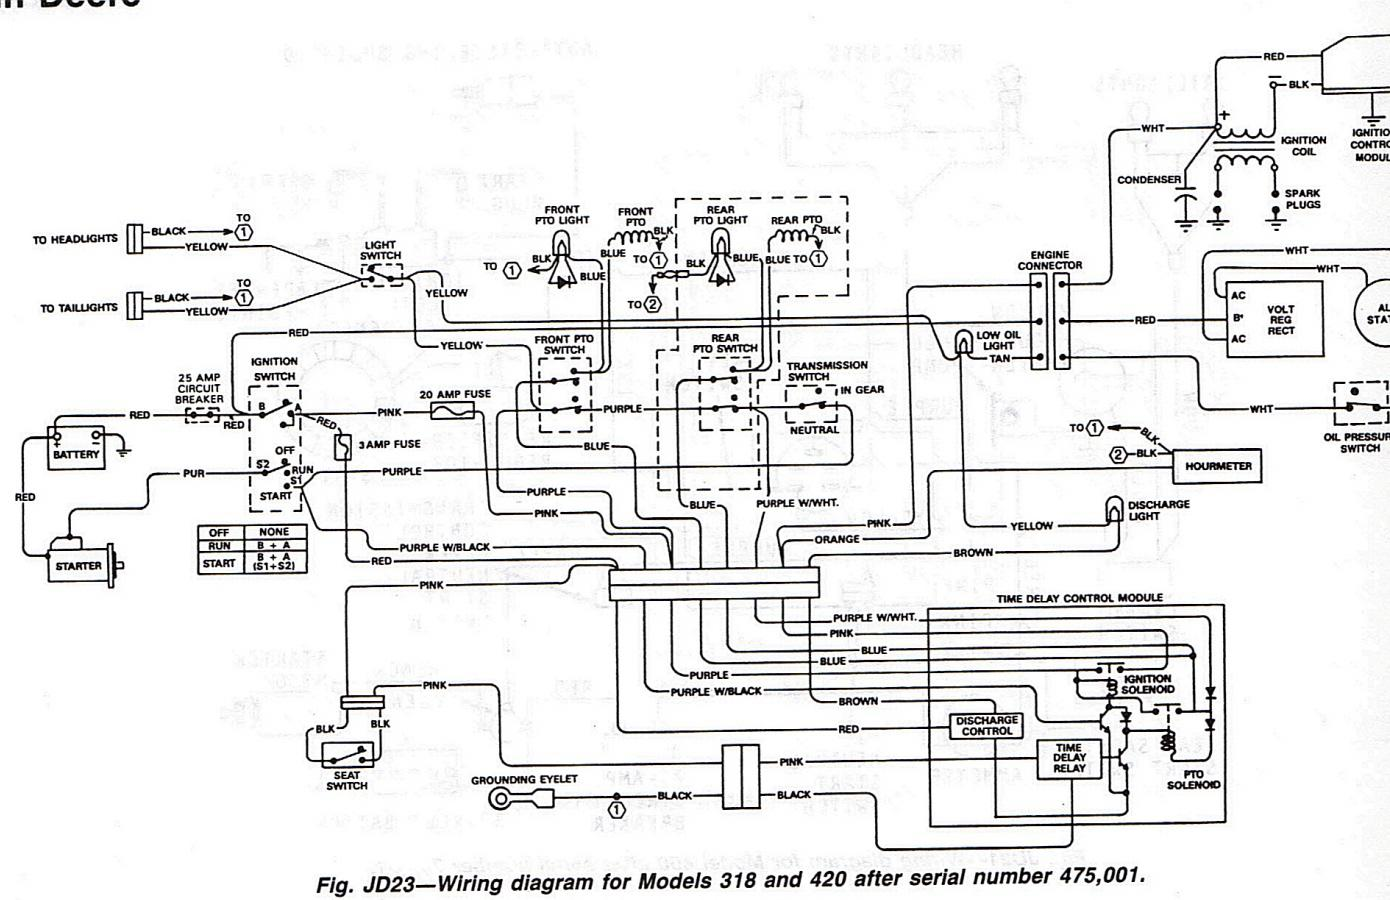 2011 05 31_220708_deere_318 420_after_475000 1998 john deere gator ignition wiring diagram 1998 wiring John Deere Gator Engine Diagram at reclaimingppi.co